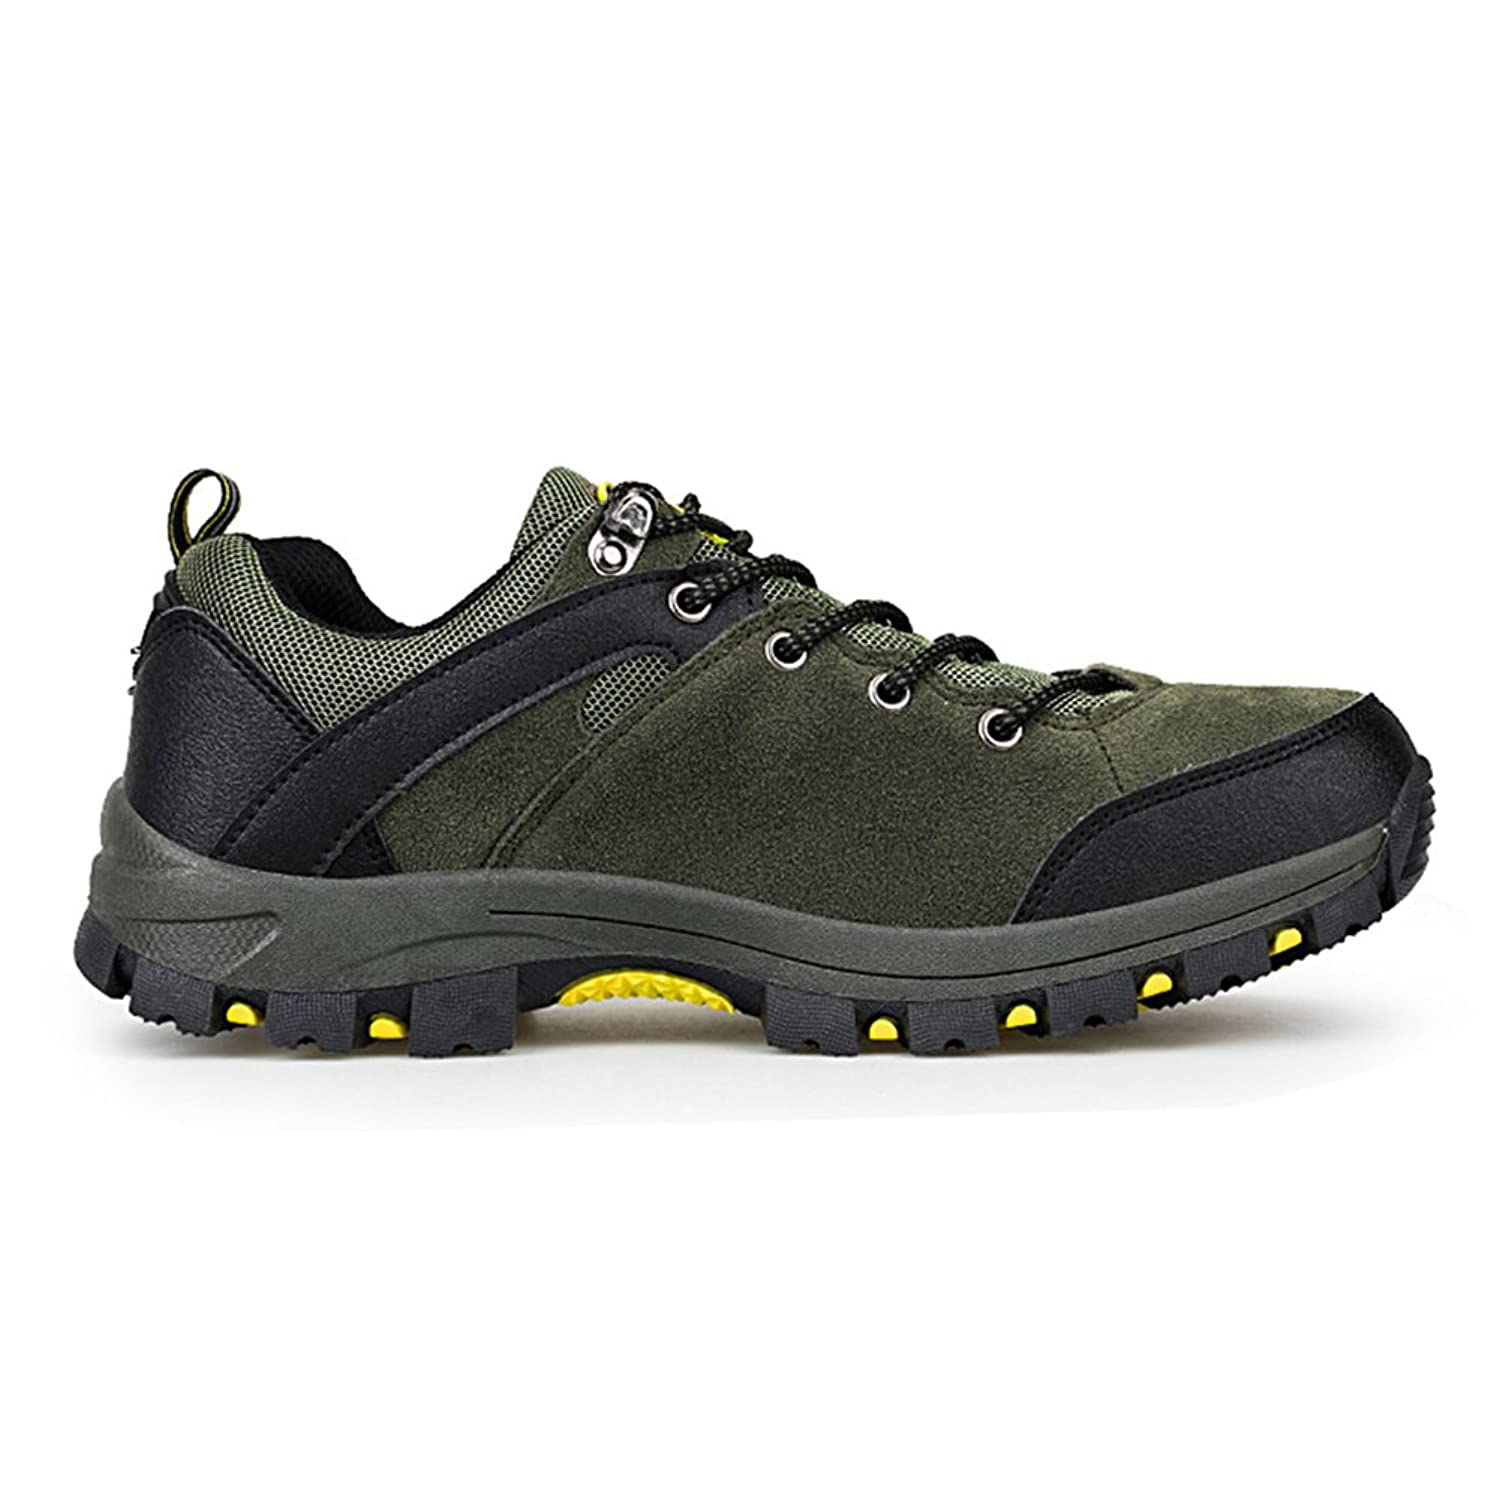 Outdoor Sneakers Men's Low Top Trekking and Walking Shoes Lace Up:  Amazon.co.uk: Shoes & Bags